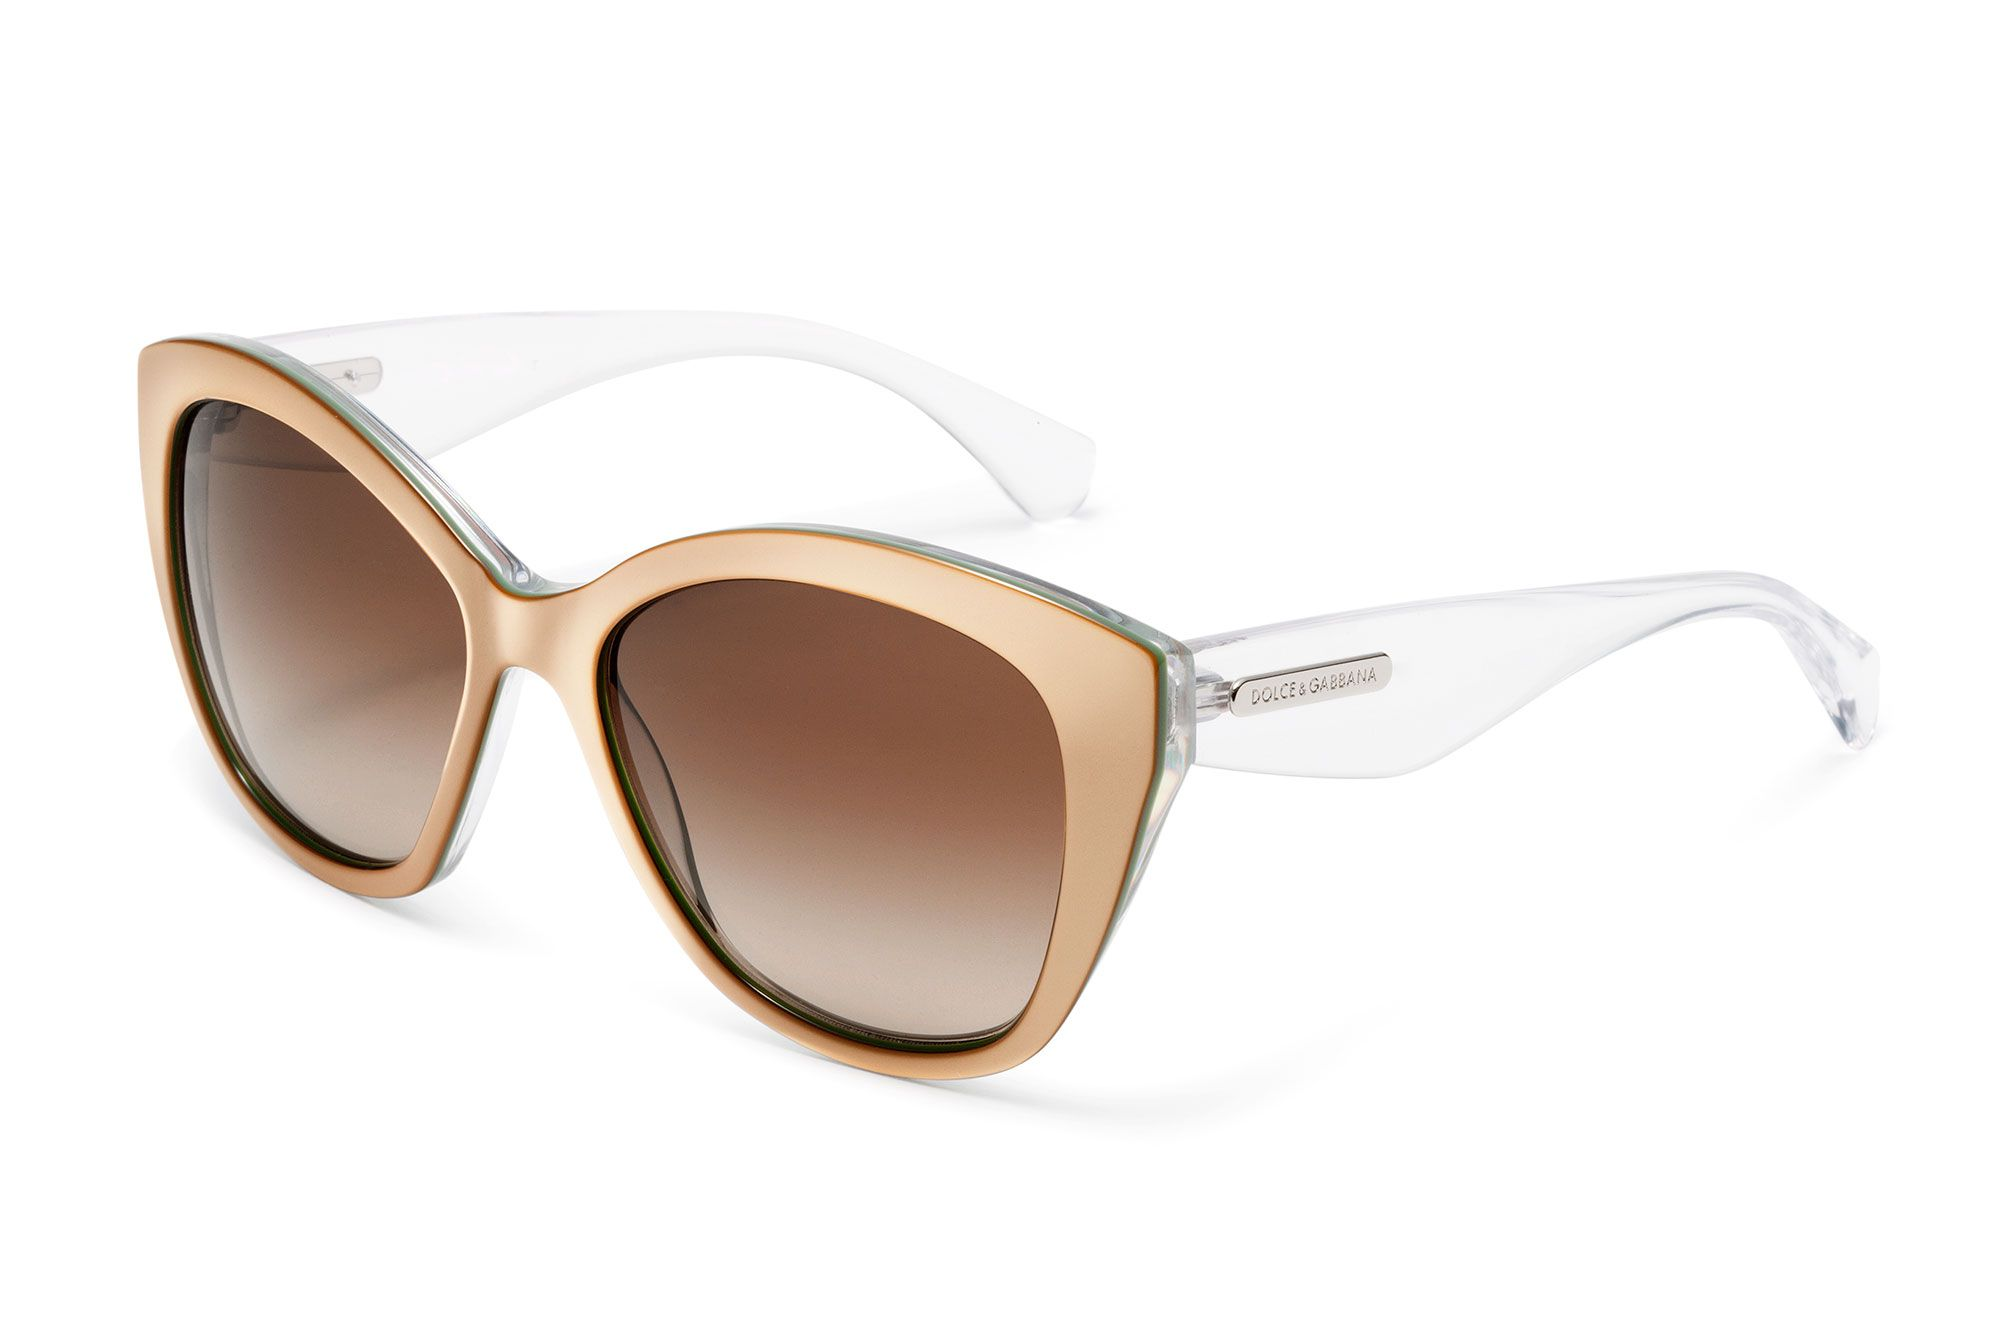 34f0ad26d3b Women s pale pink acetate sunglasses with butterfly frame and Dolce    Gabbana logo on the temples. Visit D G Eyewear website for more details.